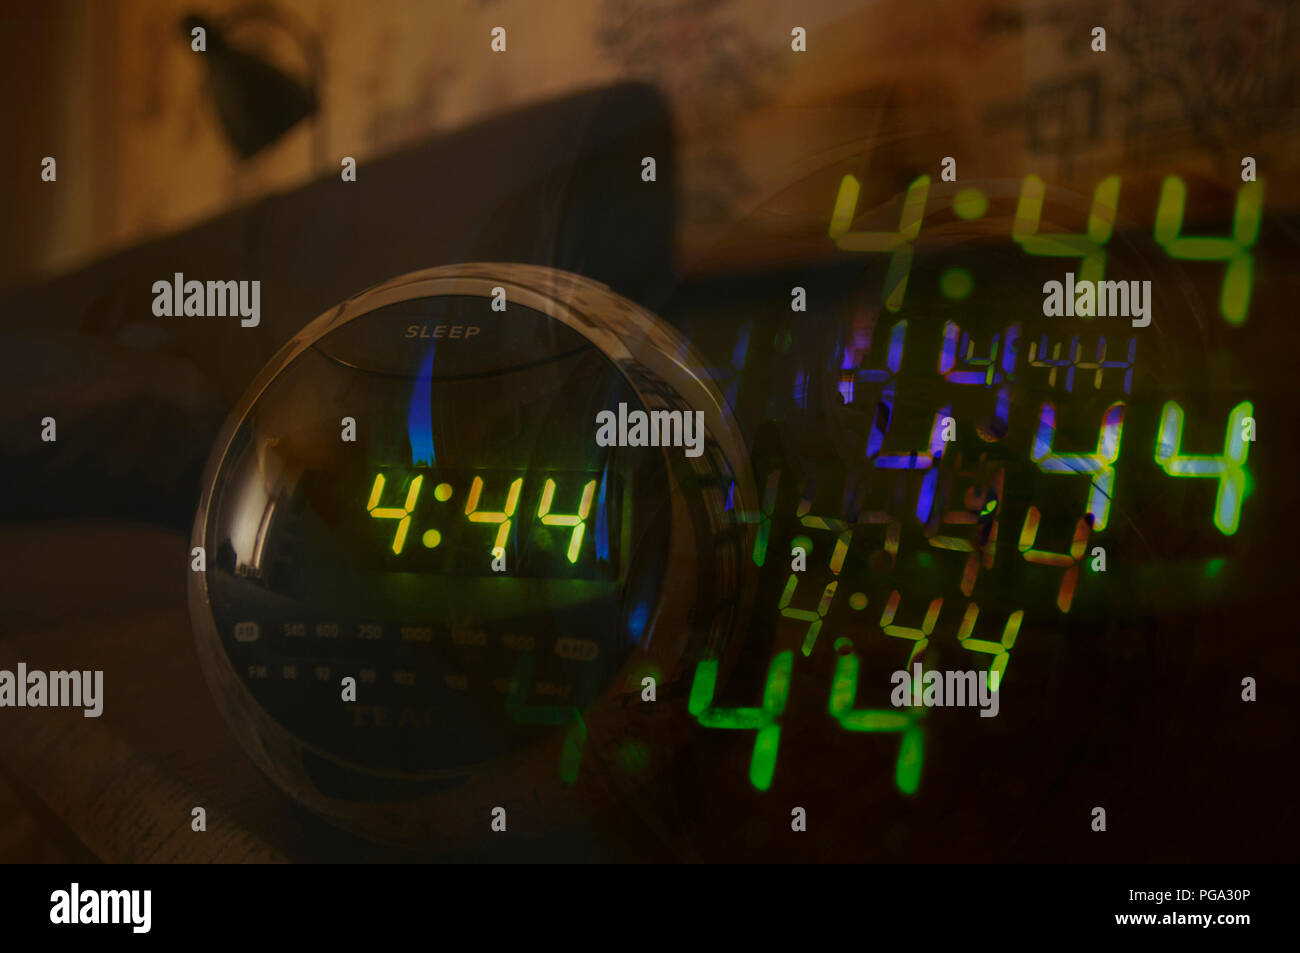 Artistic abstract images of The time 4:44 on the mind. - Stock Image